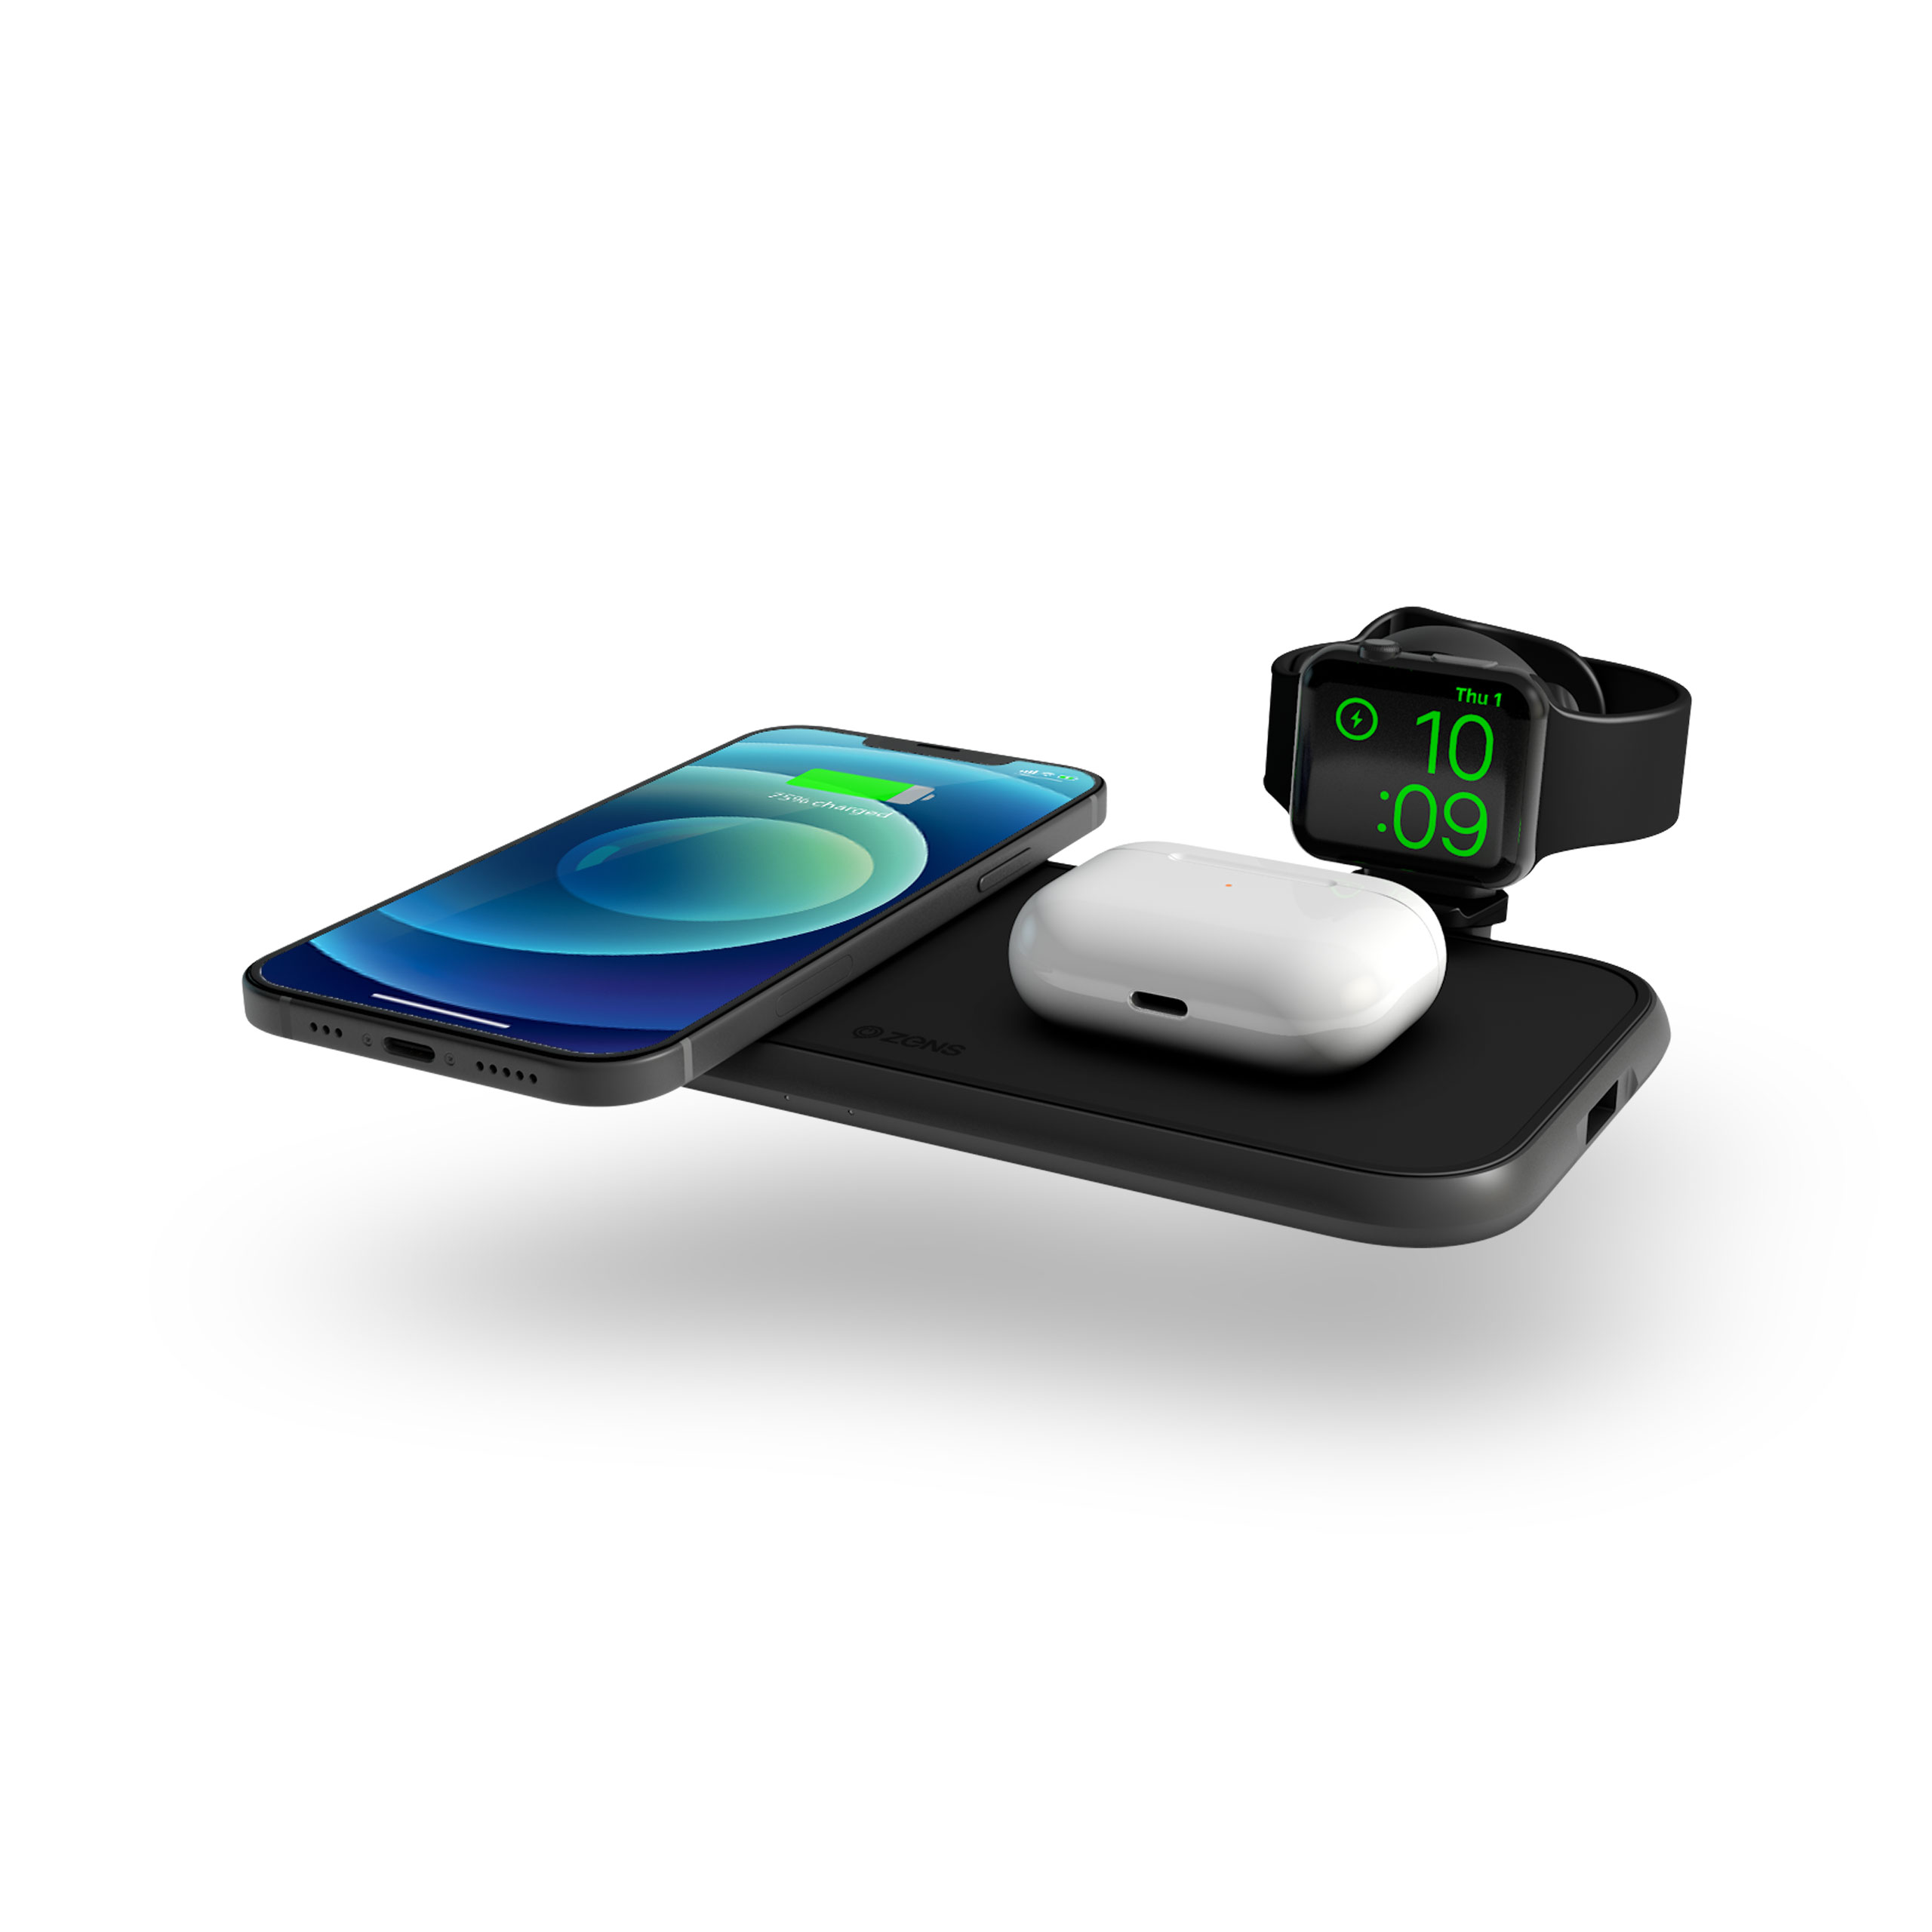 ZEDC14B - Zens 4-in-1 Wireless Charger Aluminium Top Side View with devices